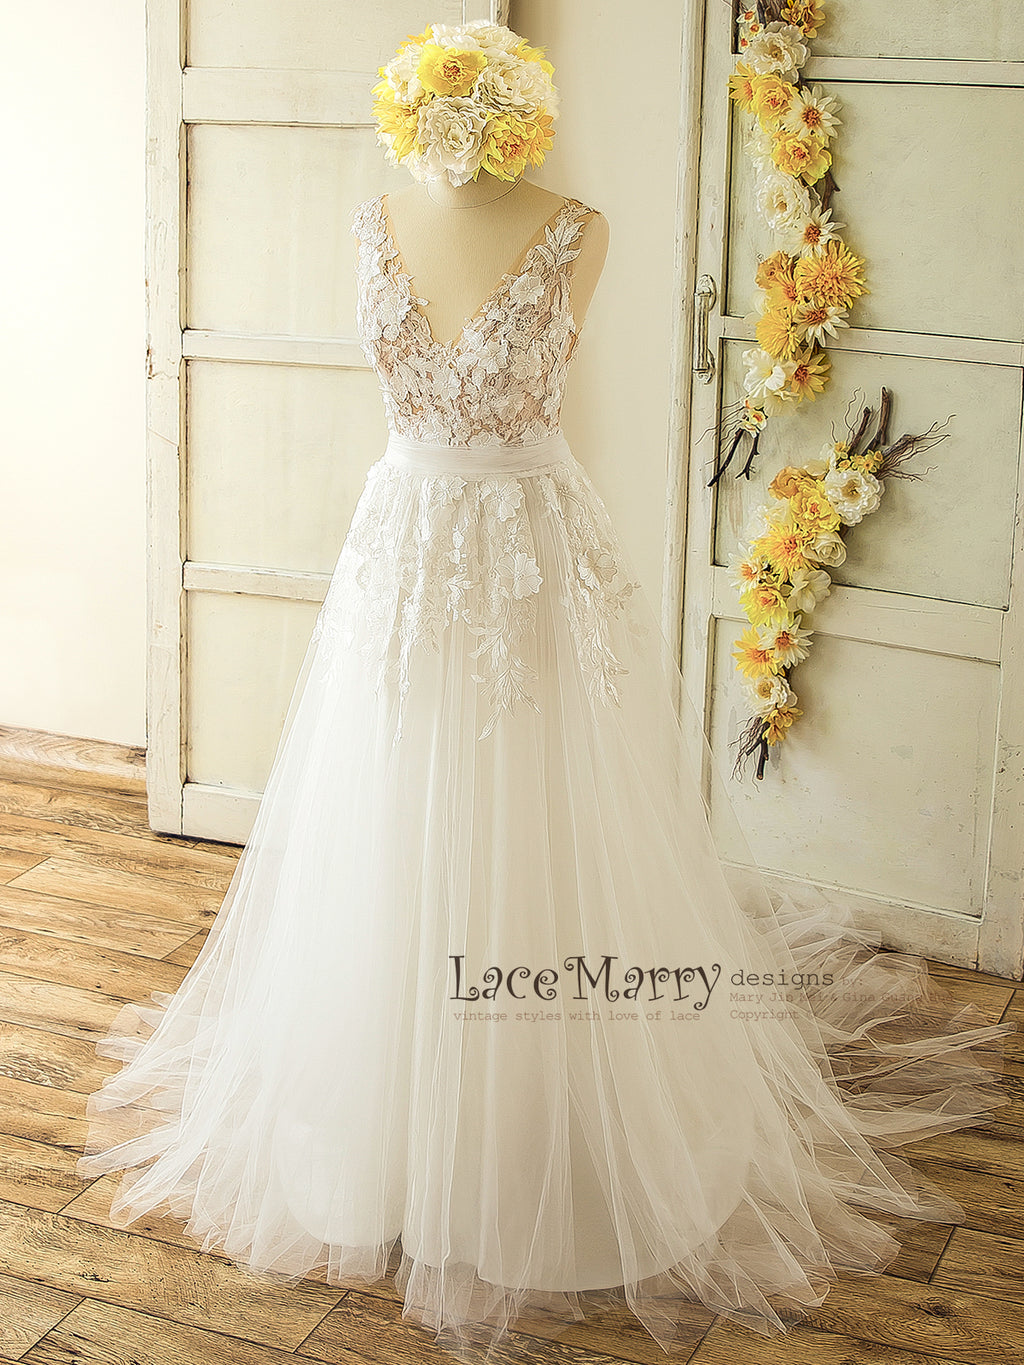 Custom made vintage style lace wedding dresses by lacemarry 3d lace boho wedding dress ombrellifo Gallery